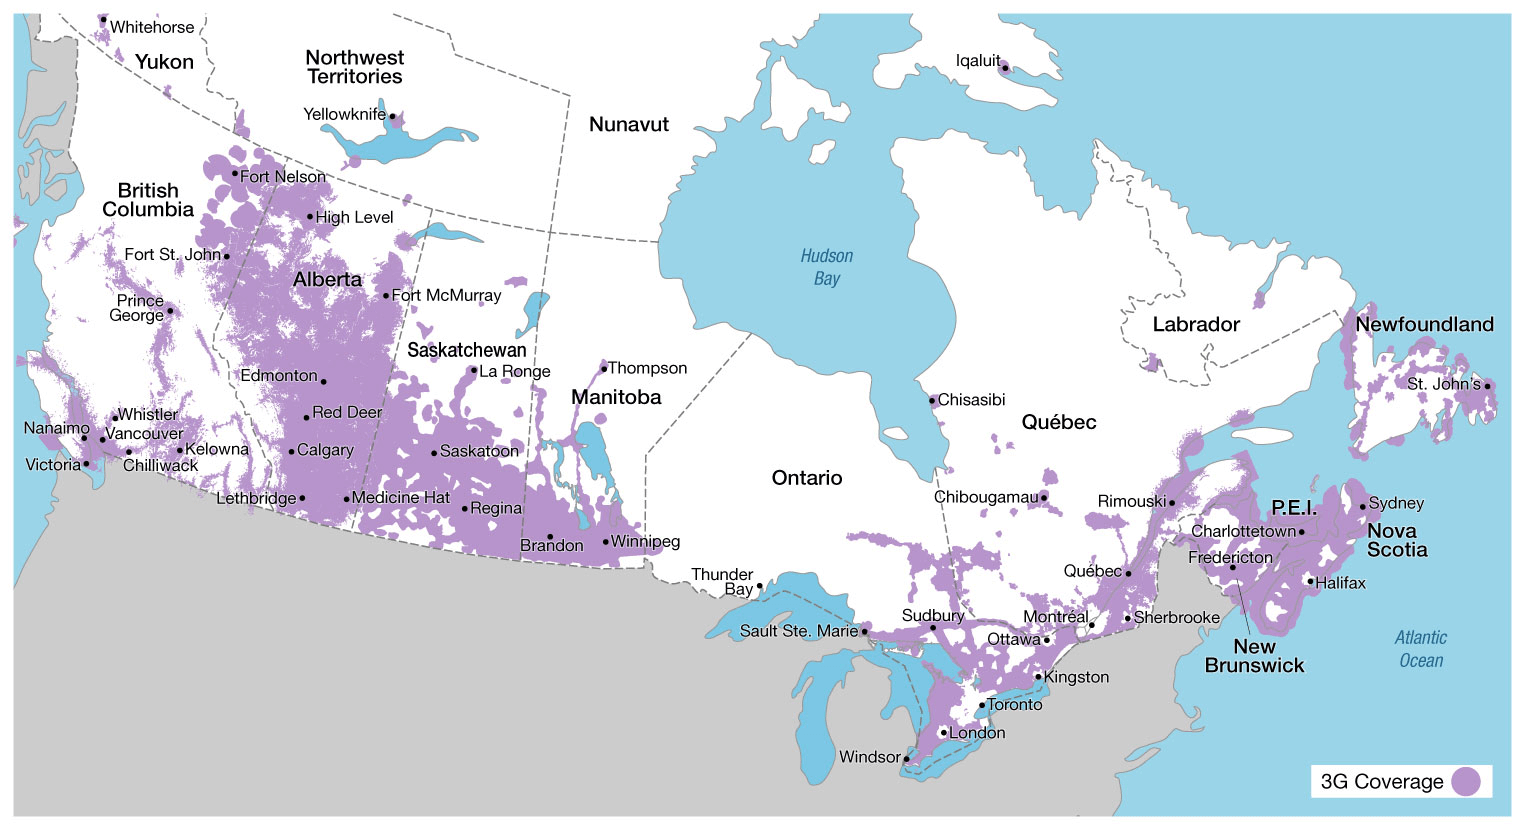 Canada Wireless Coverage Map Canadian Network Coverage – National Carriers | Canadian Spectrum